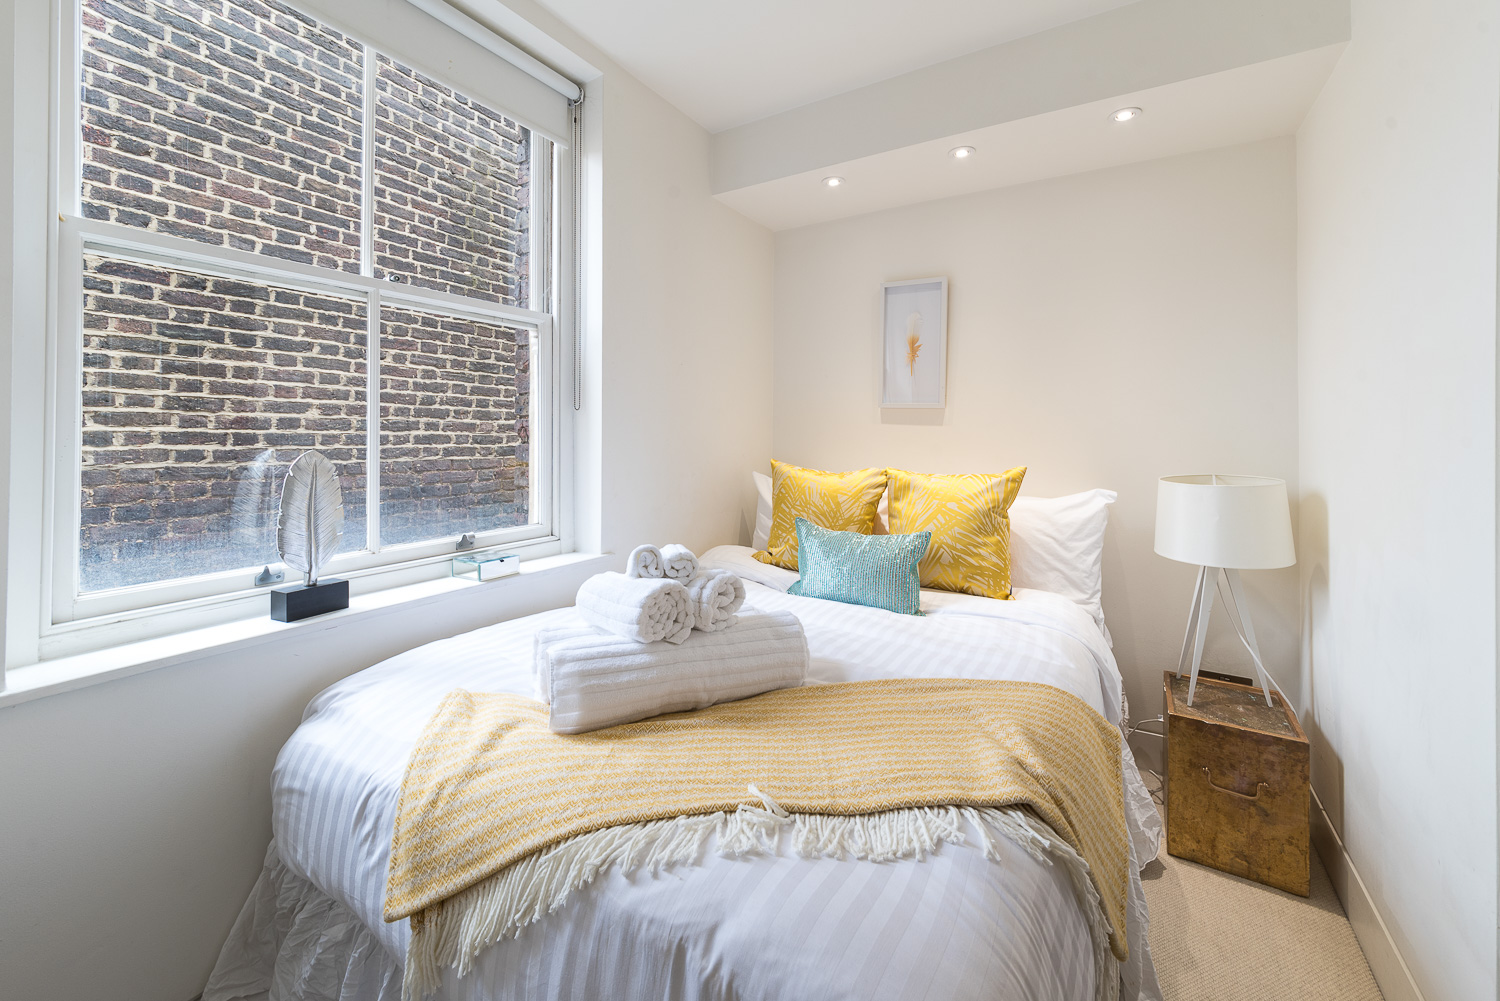 Lovelydays luxury service apartment rental - London - Fitzrovia - Foley Street II - Lovelysuite - 2 bedrooms - 2 bathrooms - Double bed - a8d8decea746 - Lovelydays